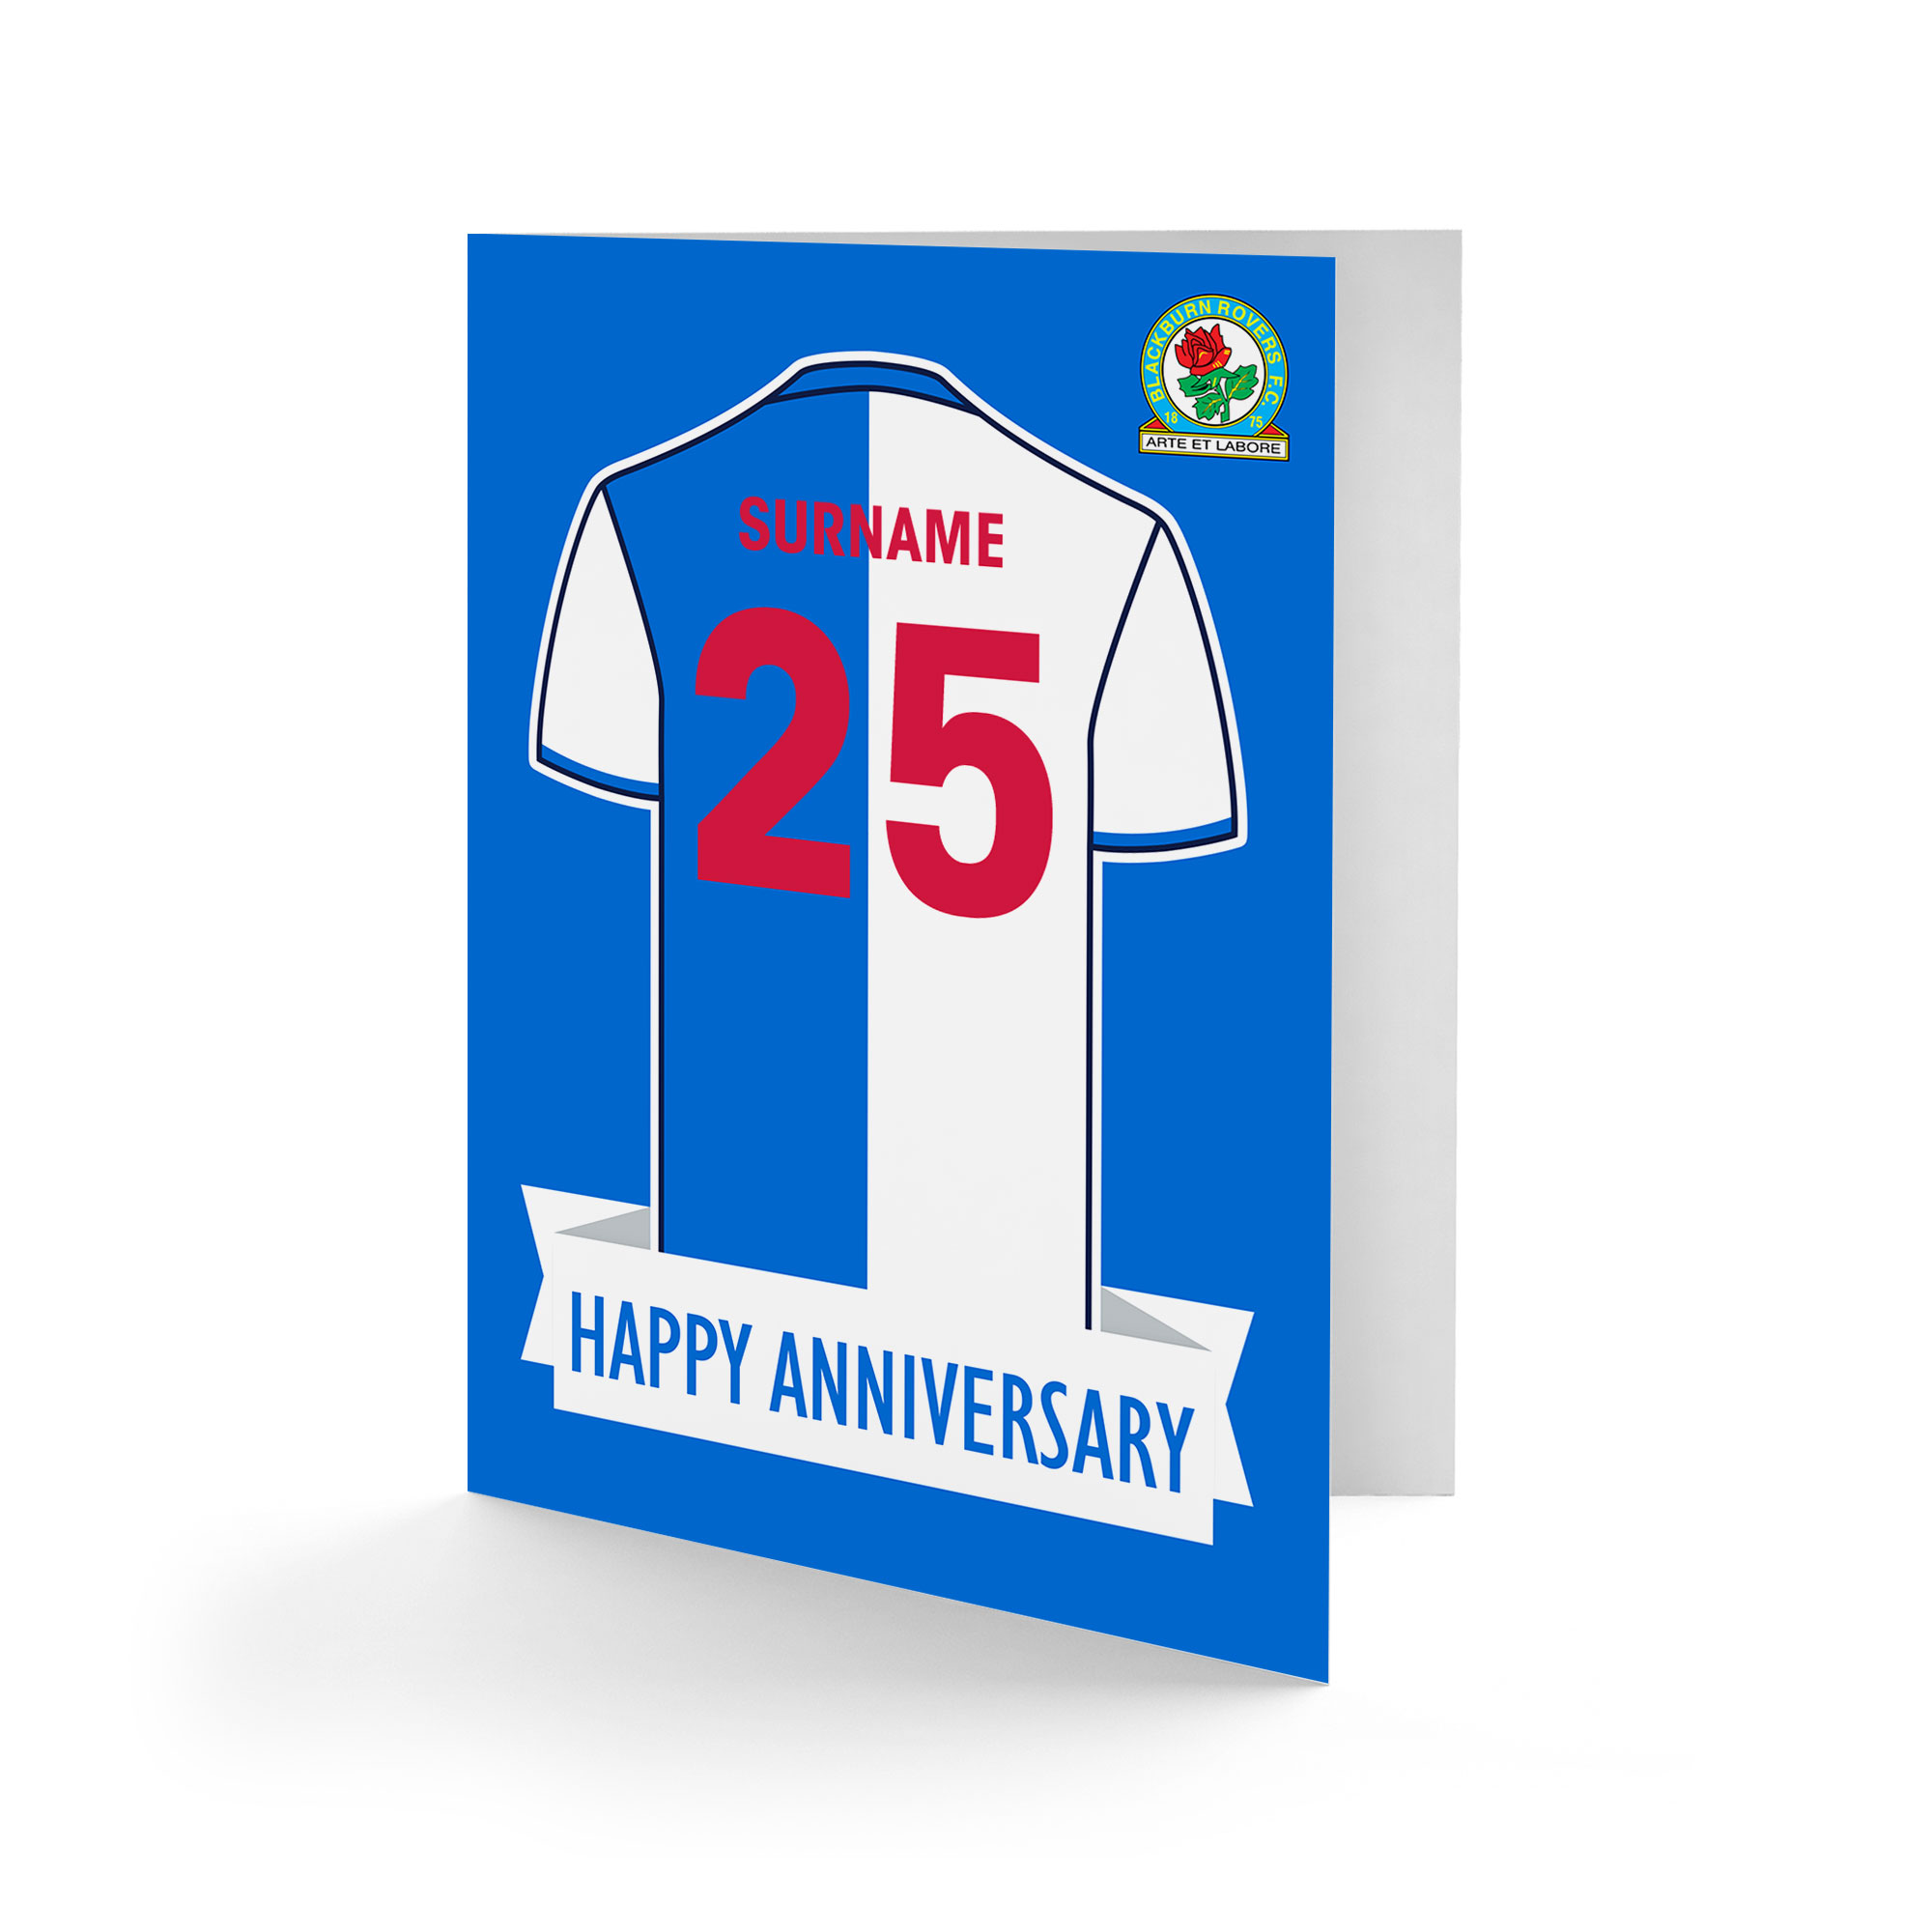 Blackburn Rovers FC Shirt Anniversary Card